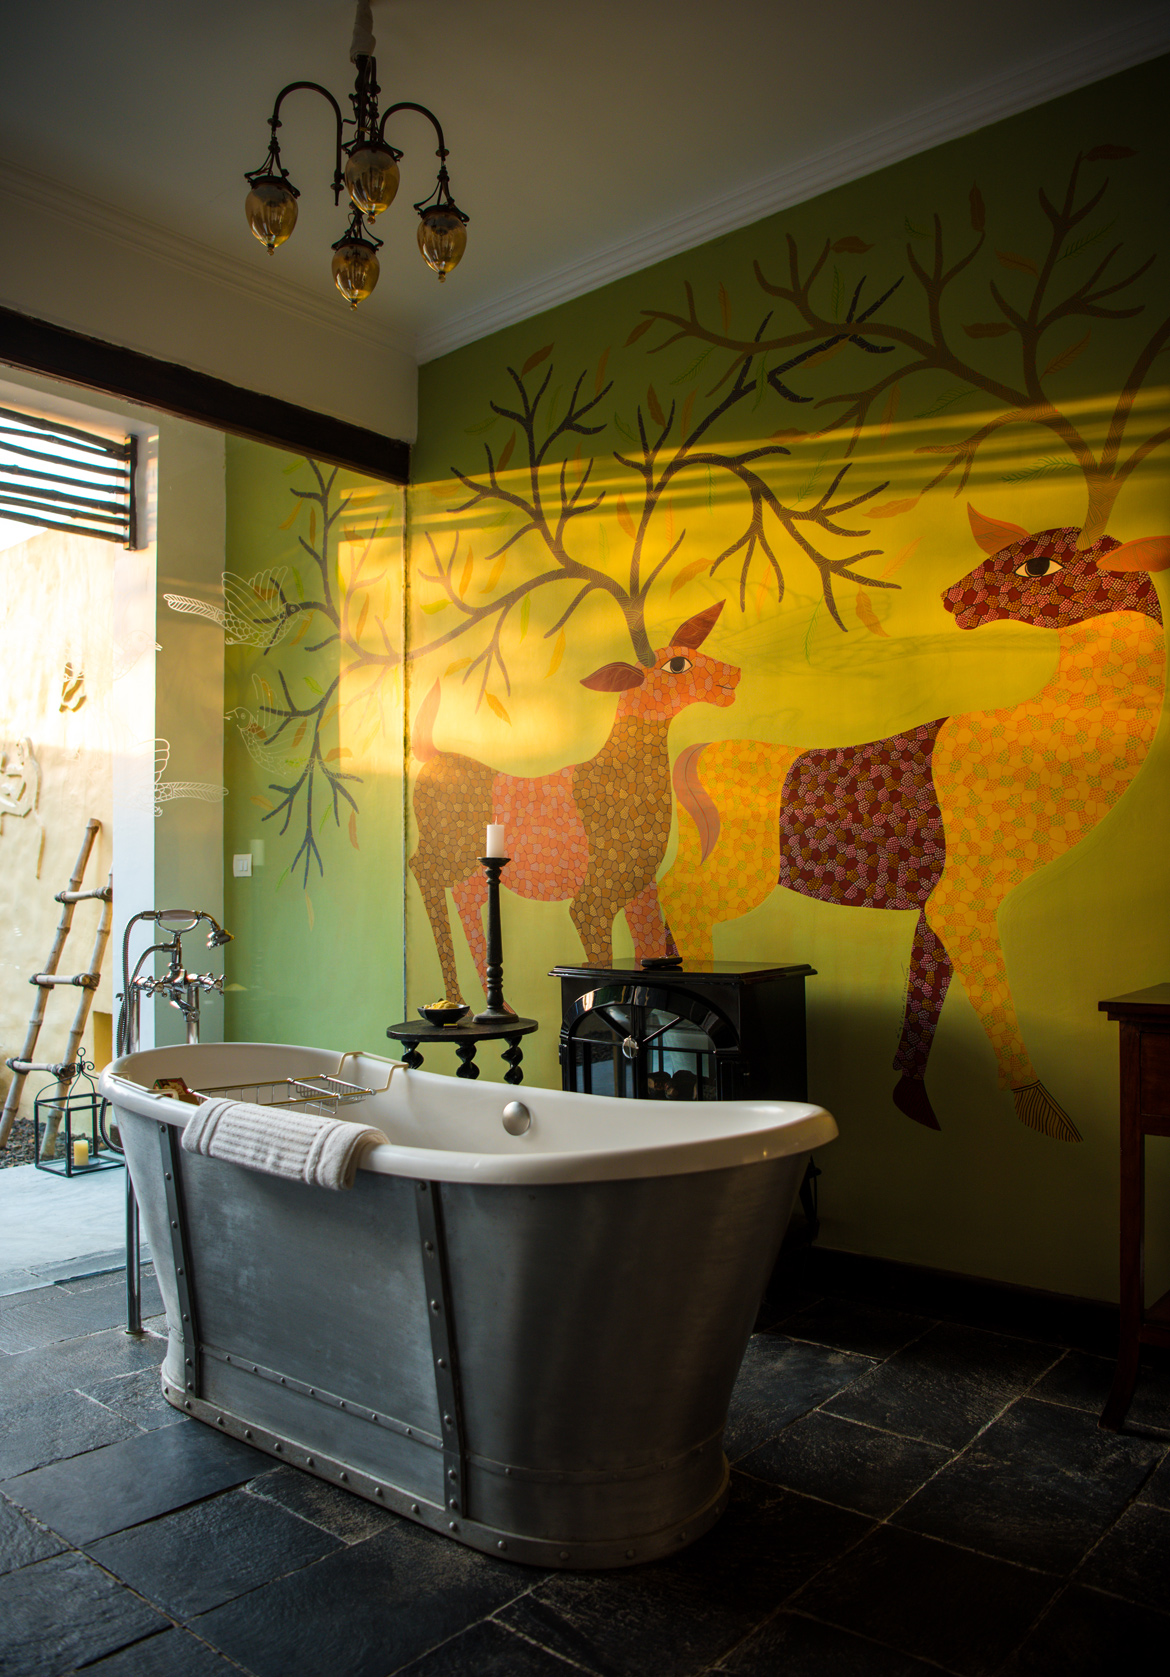 A Gond painting inside one of the villas at Samode Safari Lodge in Bandhavgarh.